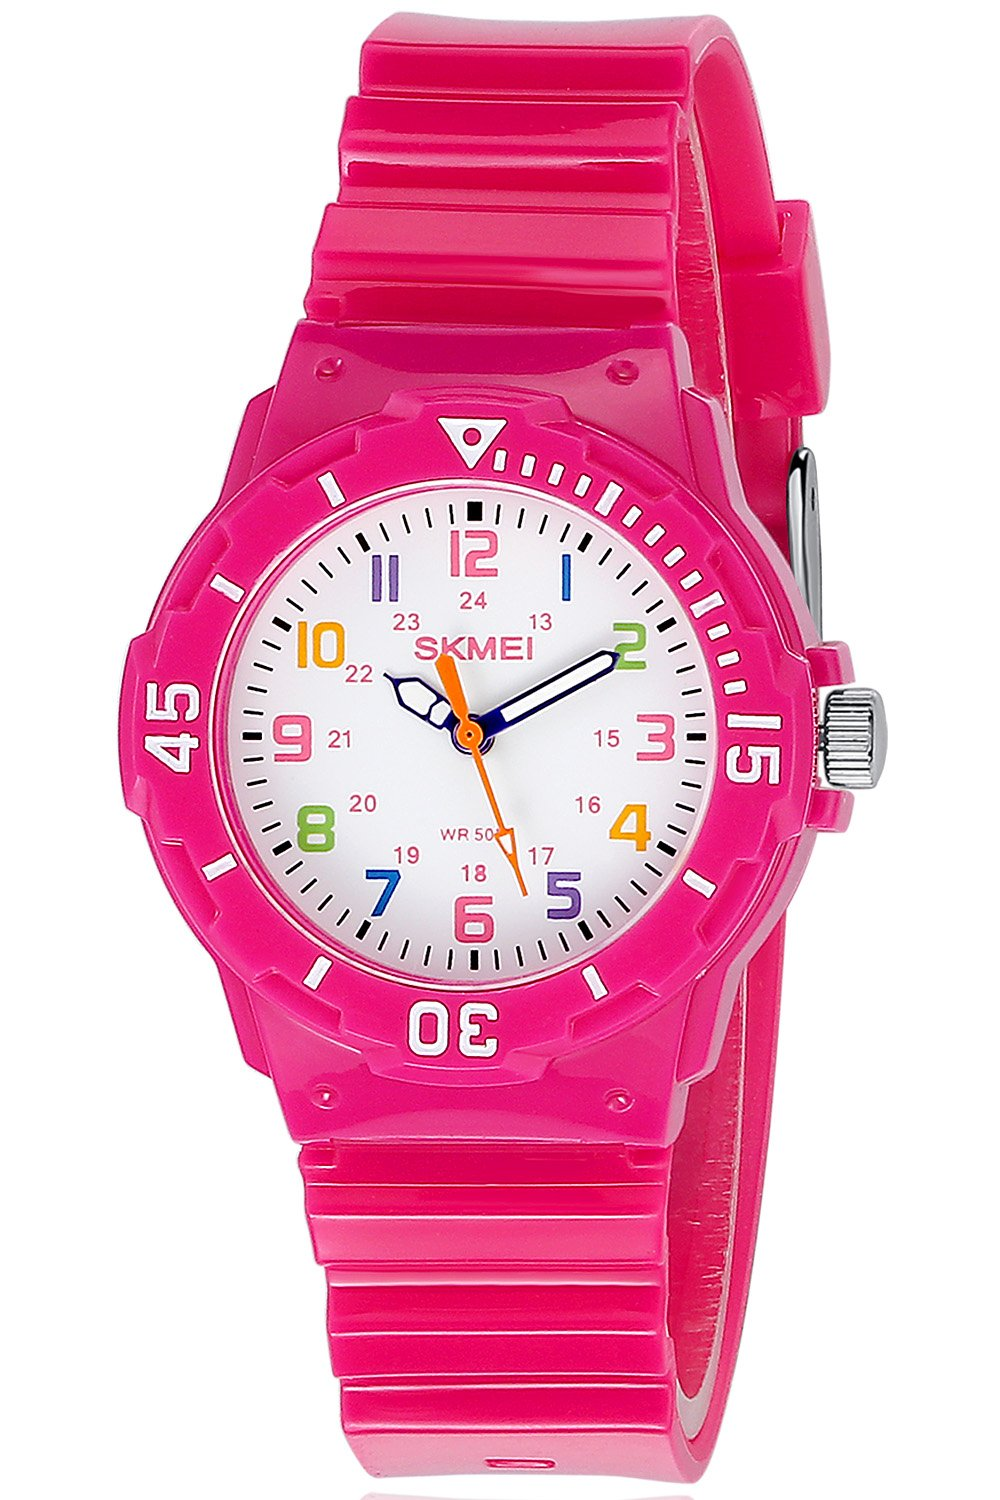 Girls Wrist Watch Two Display Modes,Colourful Numbers,Boys Girls Children Watch Rose Red